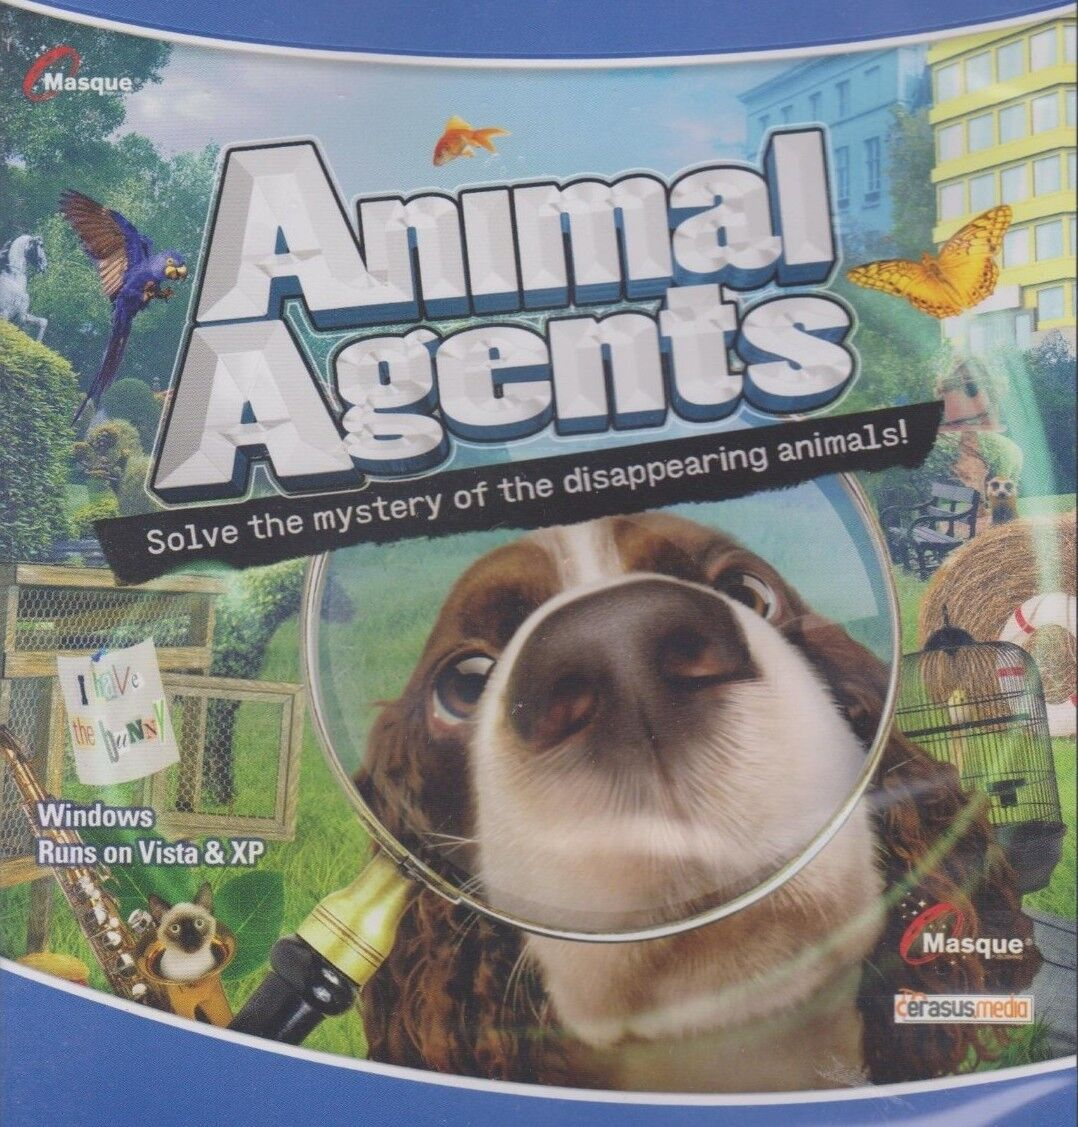 Computer Games - Animal Agents PC Games Windows 10 8 7 XP Computer seek & find hidden object NEW